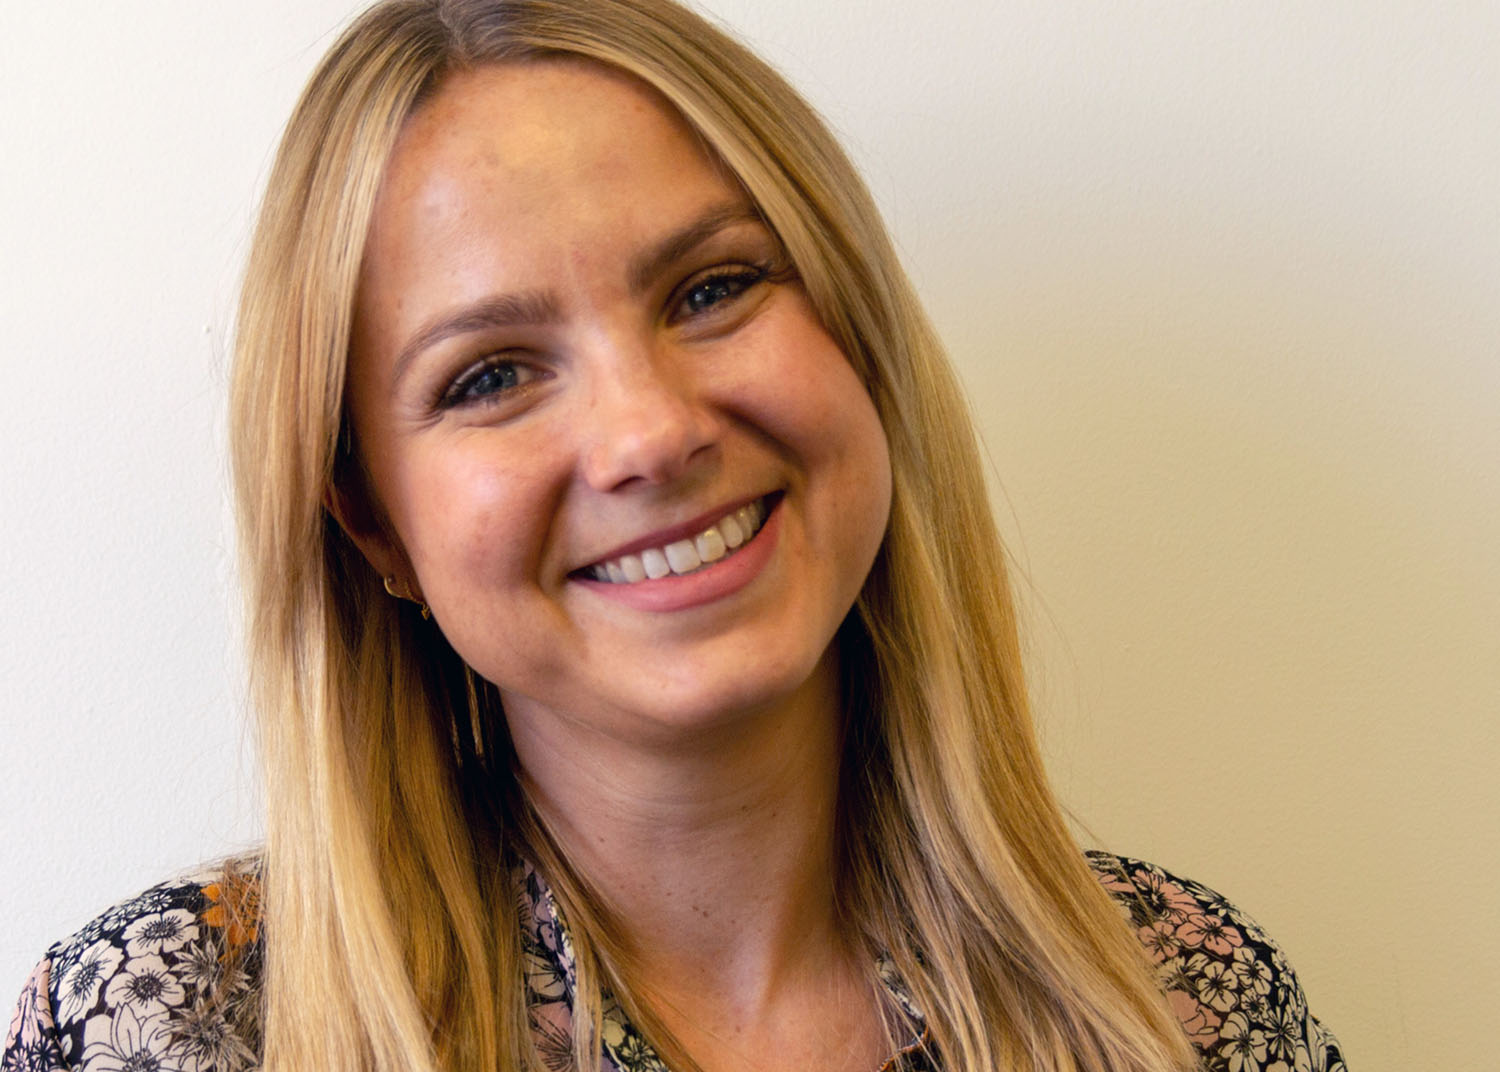 Sarah Sawdon promoted to Group Client Director at Marketforce, leading Lotterywest account